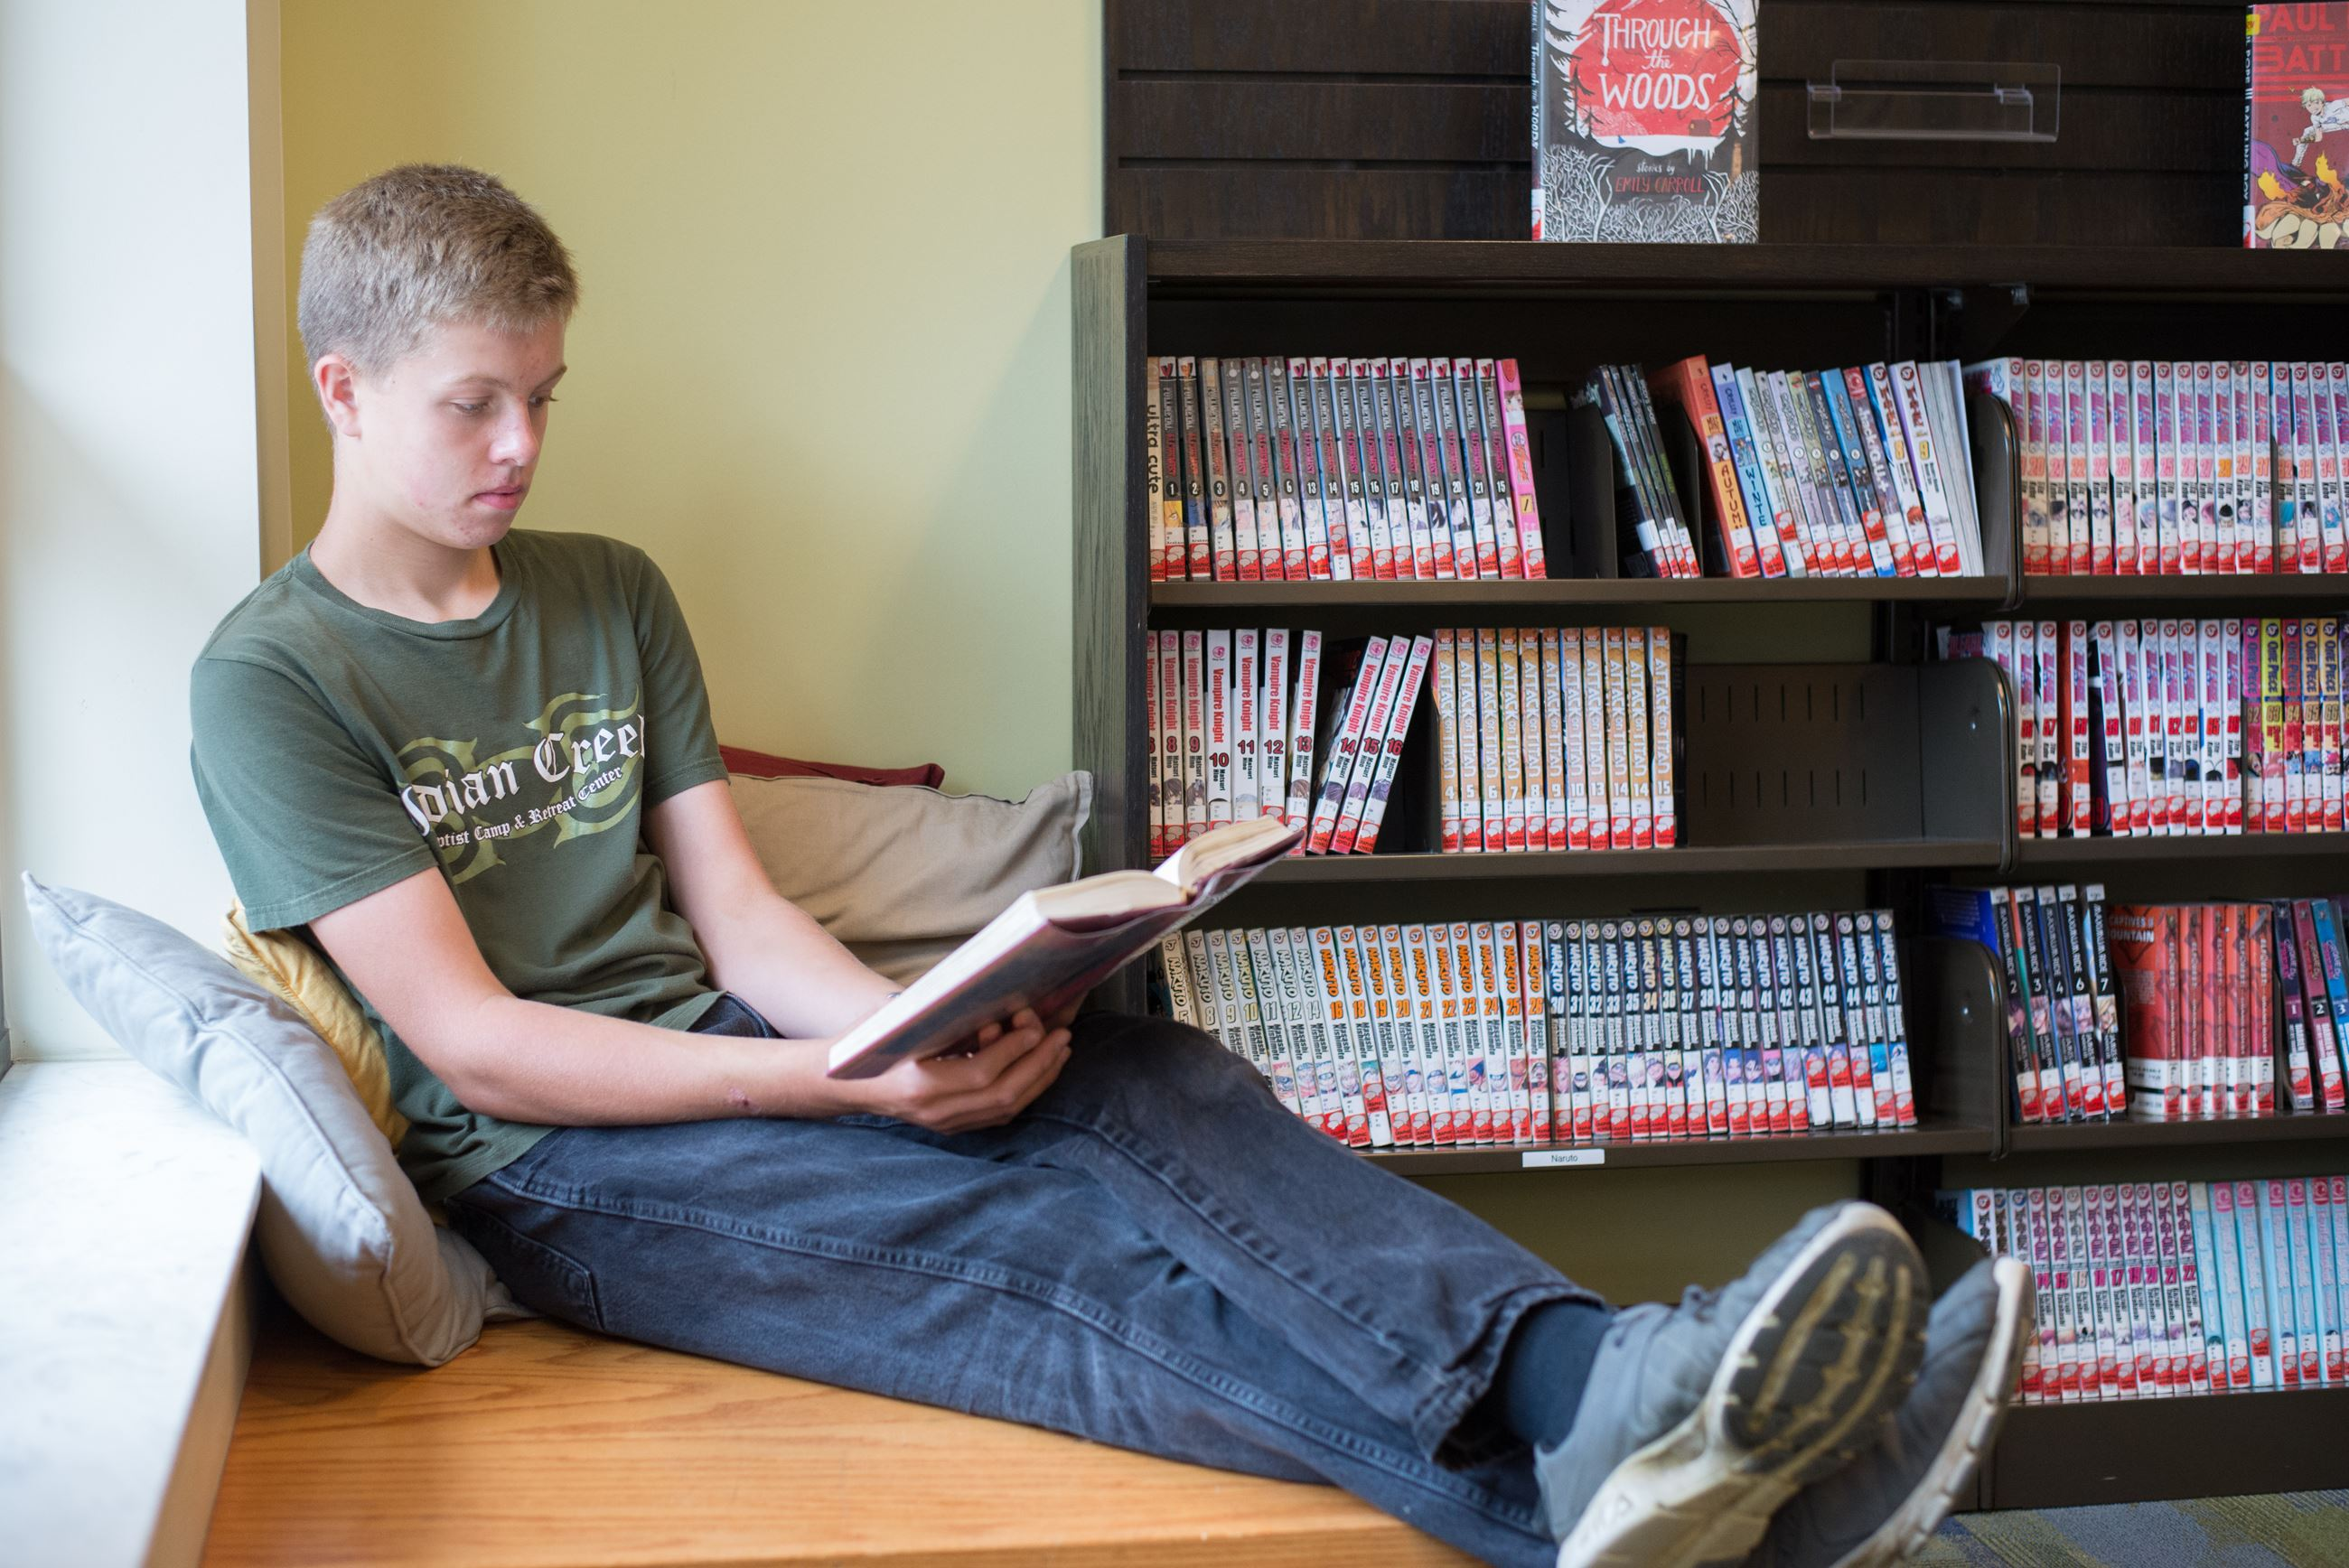 Image of a Teen boy sitting on a bench reading a book in the Teen Zone